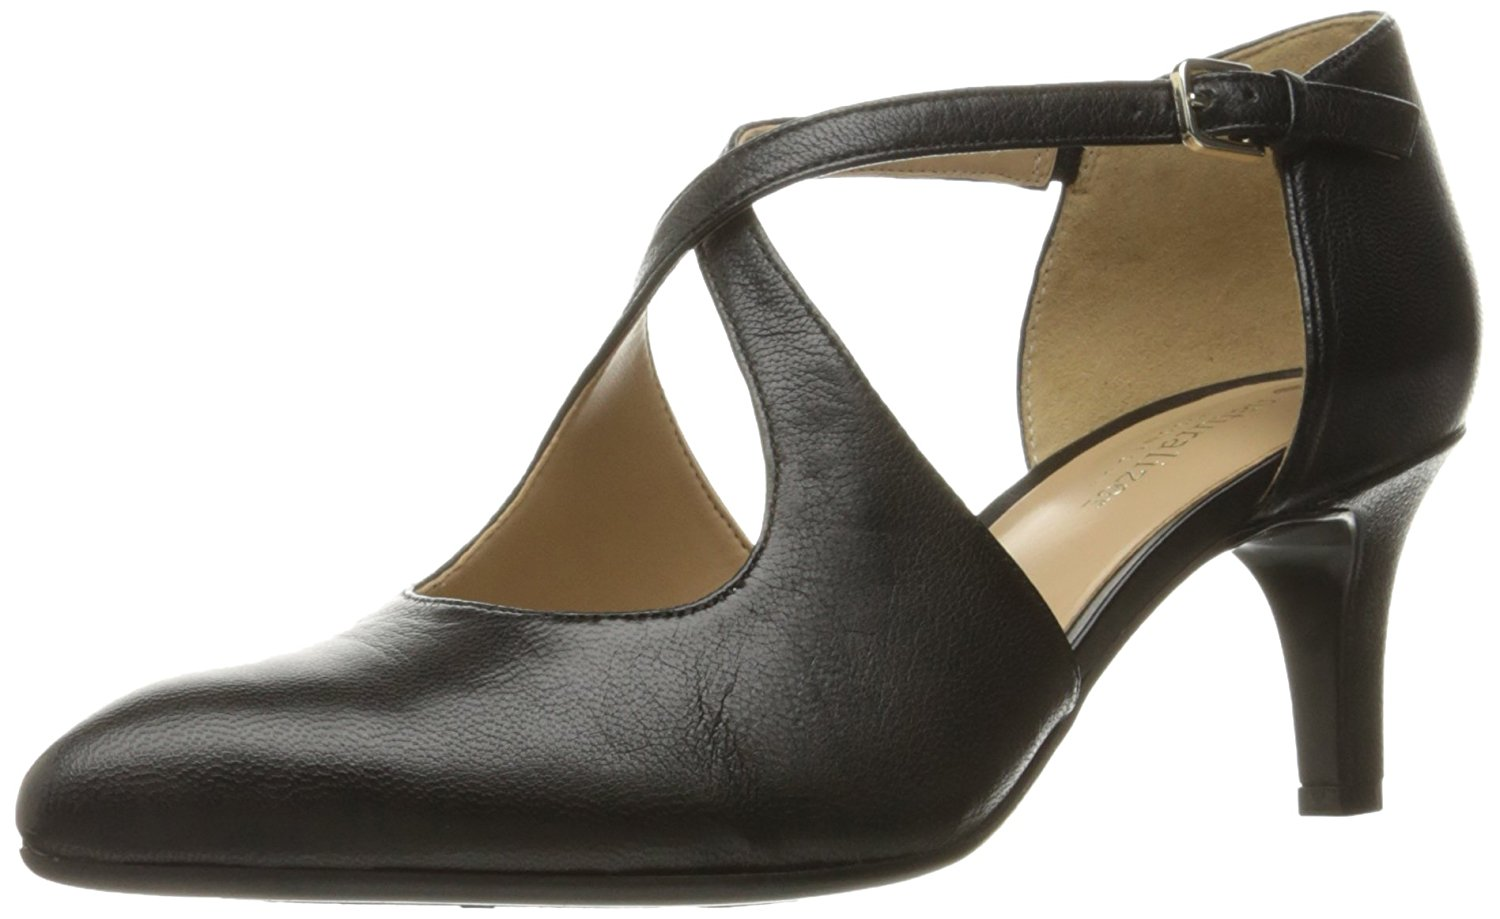 Naturalizer Womens Okira Leather Closed Toe Ankle Strap D-orsay Pumps by Naturalizer